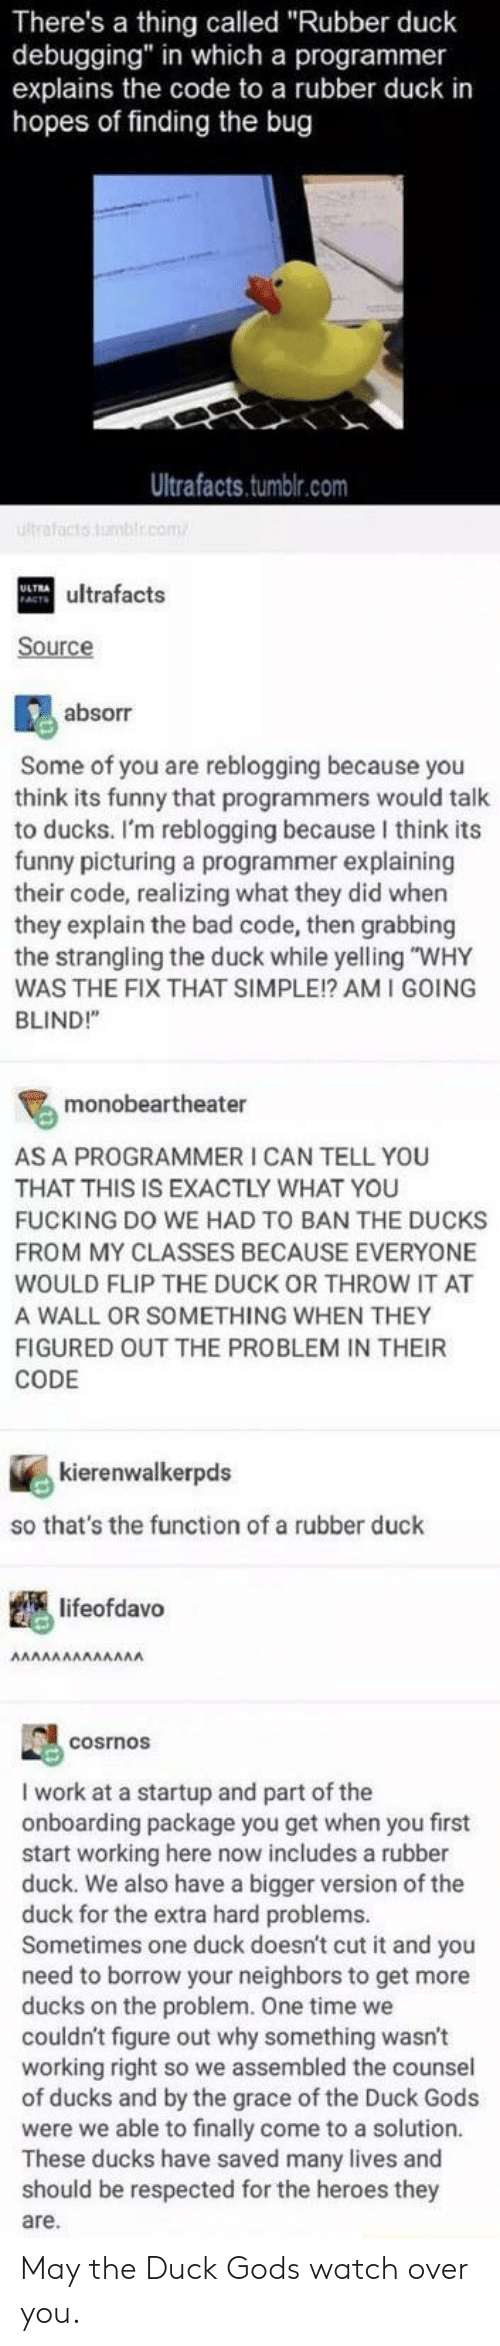 "Bad, Fucking, and Funny: There's a thing called ""Rubber duck  debugging"" in which a programmer  explains the code to a rubber duck in  hopes of finding the bug  Ultrafacts.tumblr.com  ultrafacts tmblr.com  ATultrafacts  Source  absorr  Some of you are reblogging because you  think its funny that programmers would talk  to ducks. I'm reblogging because I think its  funny picturing a programmer explaining  their code, realizing what they did when  they explain the bad code, then grabbing  the strangling the duck while yelling ""WHY  WAS THE FIX THAT SIMPLE!? AM I GOING  BLIND!""  monobeartheater  AS A PROGRAMMER I CAN TELL YOU  THAT THIS IS EXACTLY WHAT YOU  FUCKING DO WE HAD TO BAN THE DUCKS  FROM MY CLASSES BECAUSE EVERYONE  WOULD FLIP THE DUCK OR THROW IT AT  A WALL OR SOMETHING WHEN THEY  FIGURED OUT THE PROBLEM IN THEIR  CODE  kierenwalkerpds  so that's the function of a rubber duck  lifeofdavo  ΑΛΛΛΛΛΛΛΛΛΛΑ  cosrnos  work at a startup and part of the  onboarding package you get when you first  start working here now includes a rubber  duck. We also have a bigger version of the  duck for the extra hard problems.  Sometimes one duck doesn't cut it and you  need to borrow your neighbors to get more  ducks on the problem. One time we  couldn't figure out why something wasn't  working right so we assembled the counsel  of ducks and by the grace of the Duck Gods  were we able to finally come to a solution.  These ducks have saved many lives and  should be respected for the heroes they  are. May the Duck Gods watch over you."